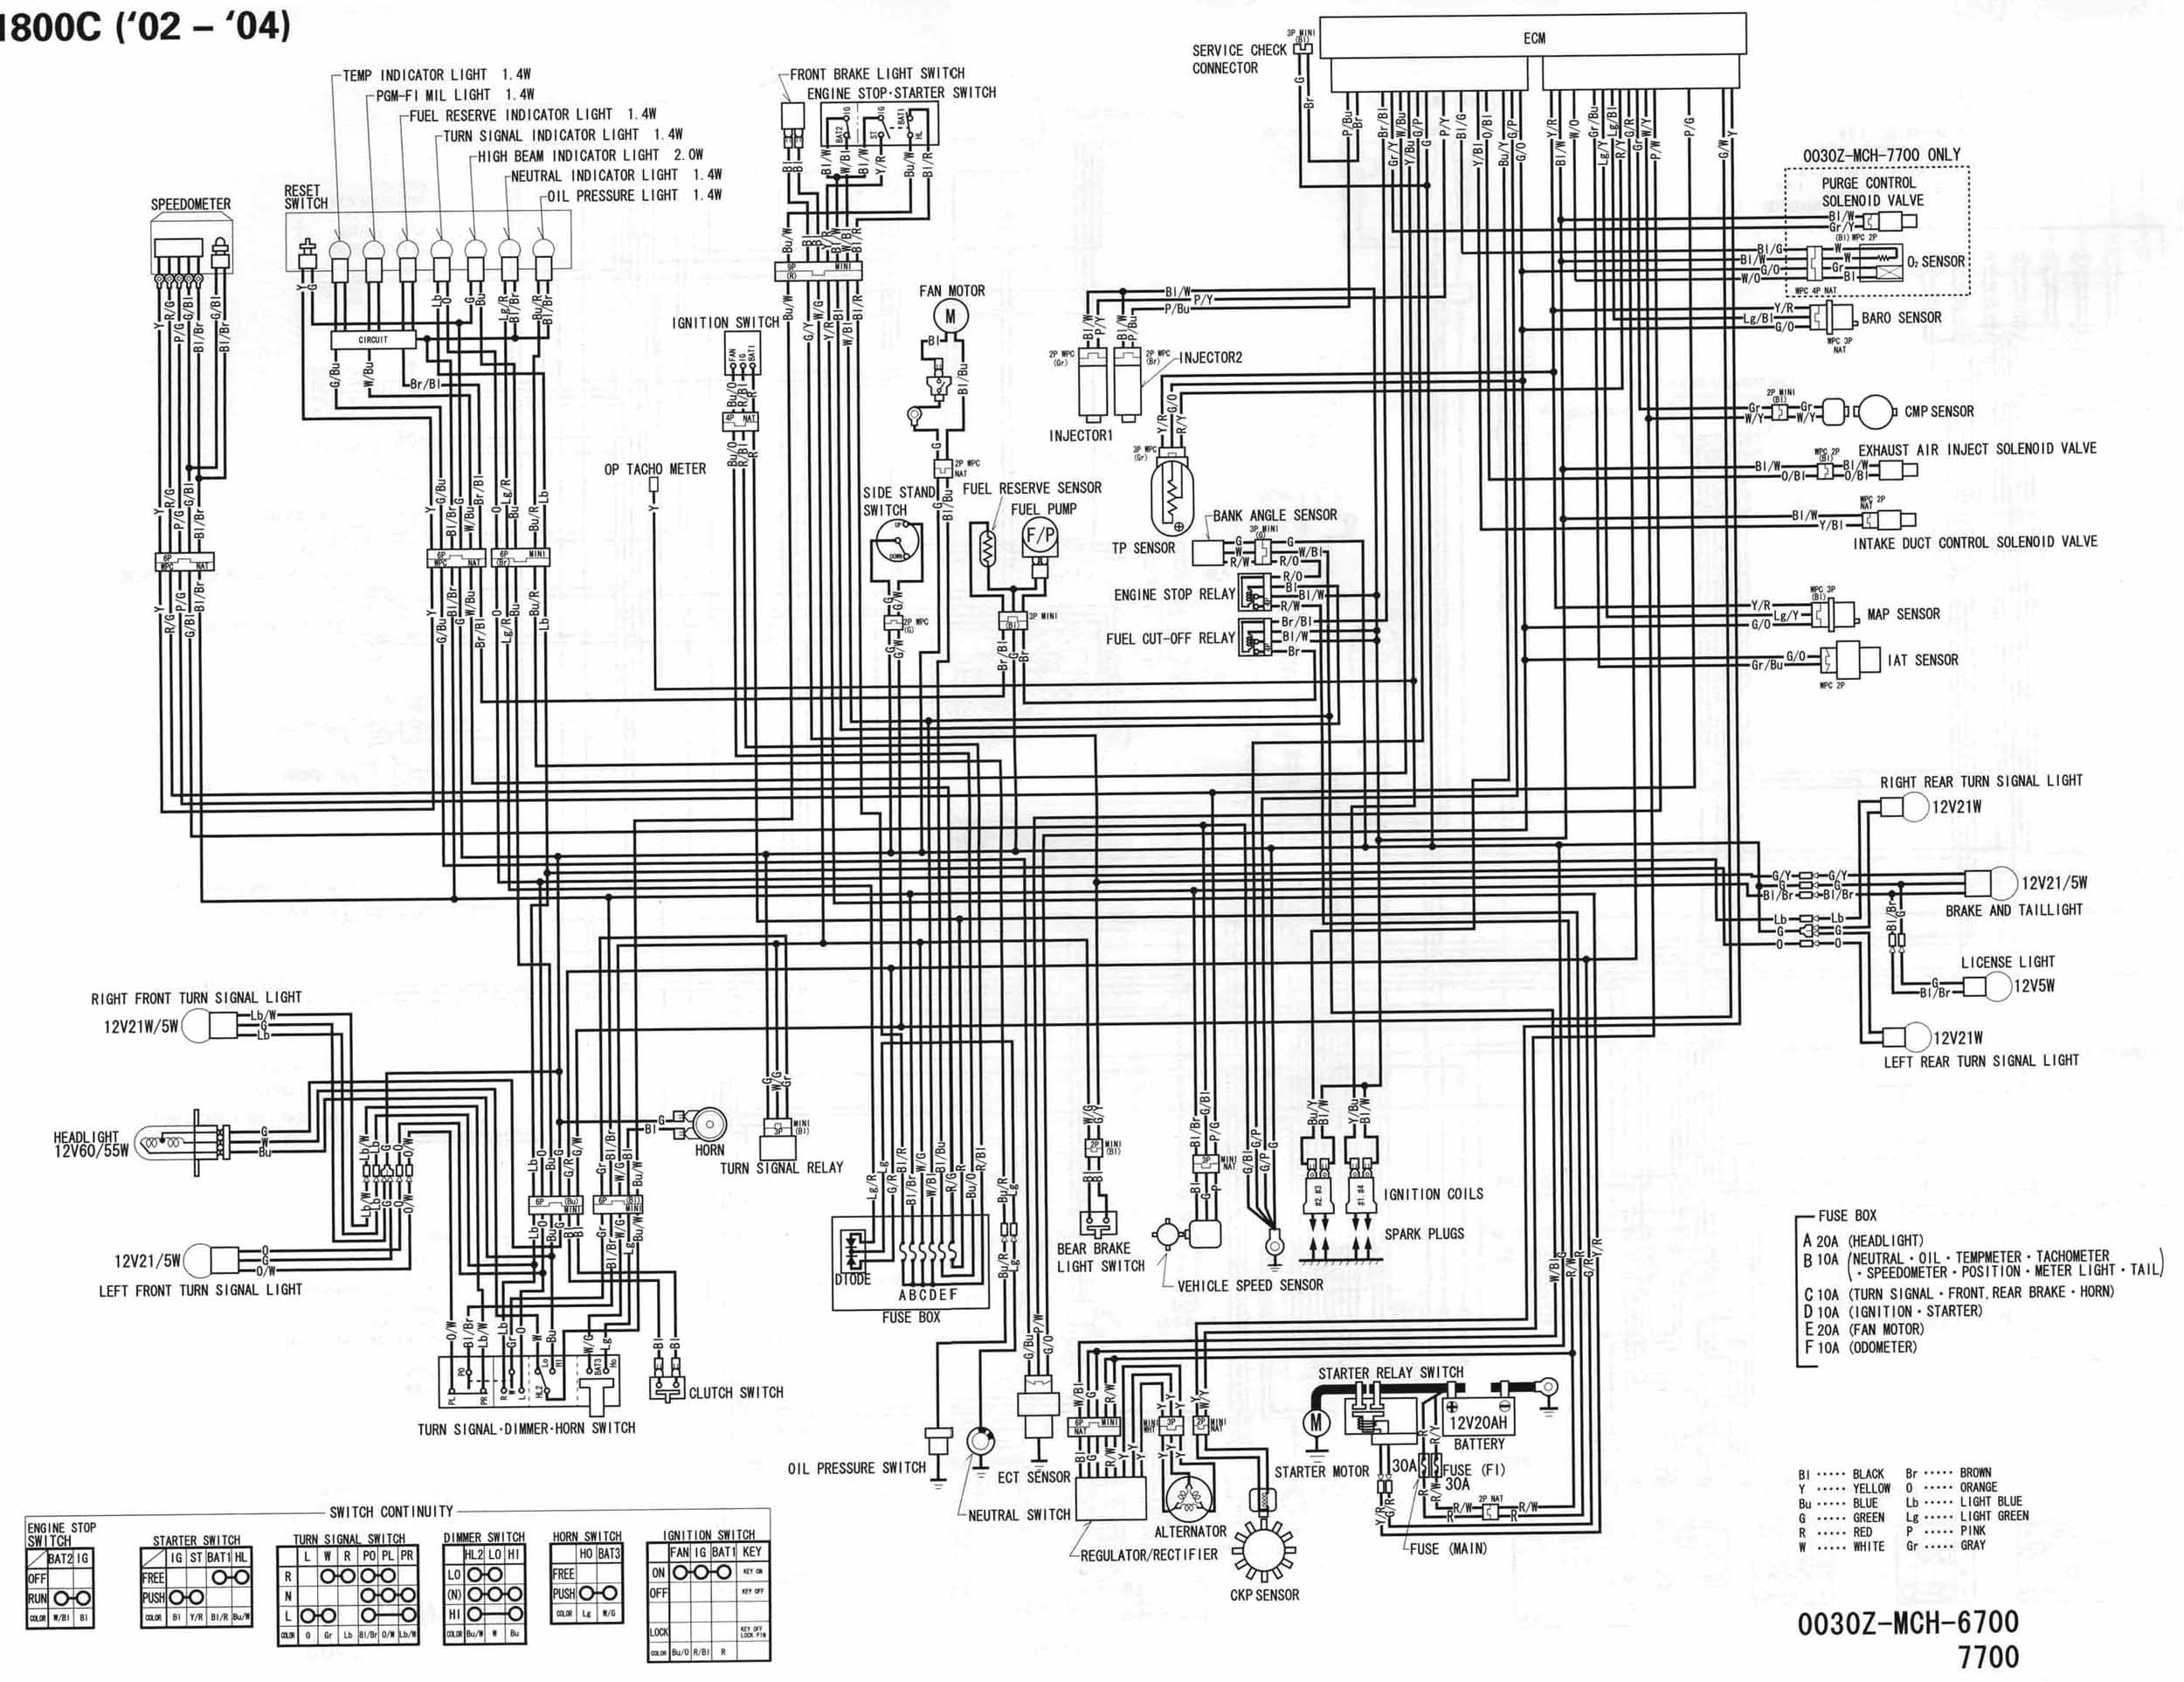 02 04_VTX1800_C_schematic motorcycle wire schematics bareass choppers motorcycle tech pages  at webbmarketing.co